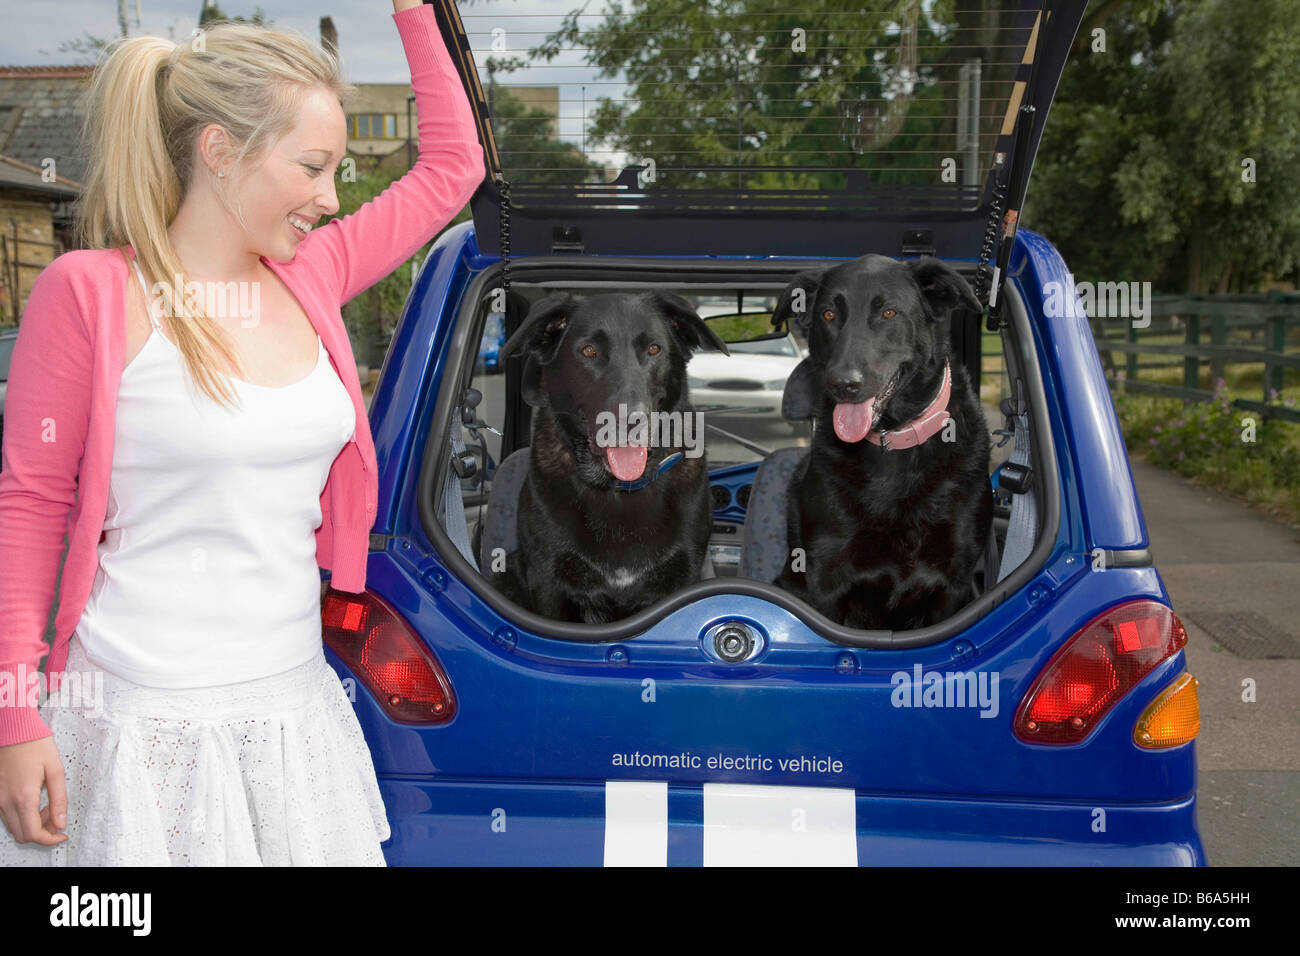 Young woman putting dogs in electric car - Stock Image